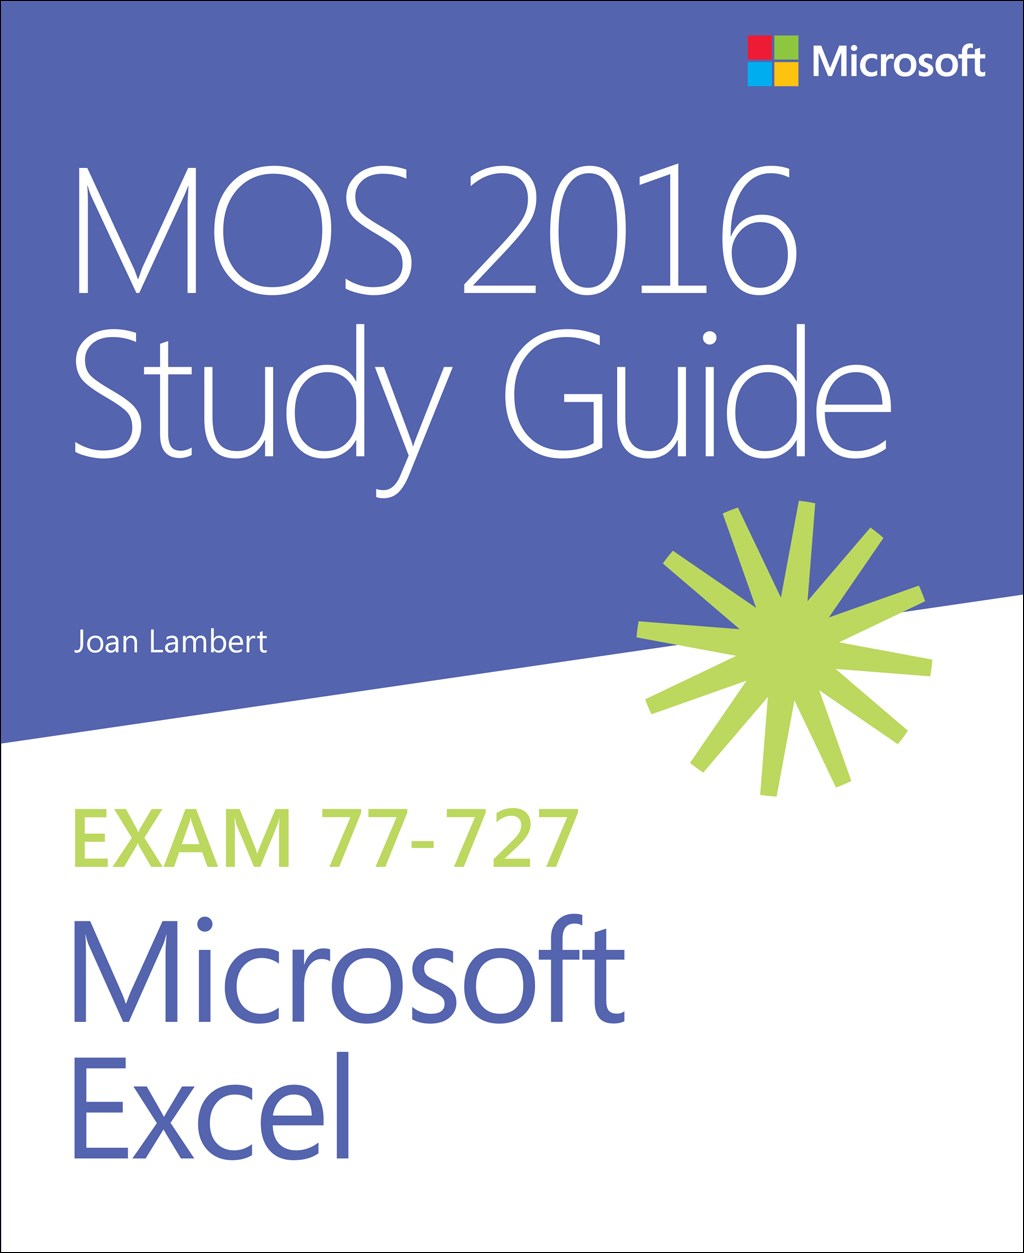 Mos 2016 Study Guide For Microsoft Excel Microsoft Press Store